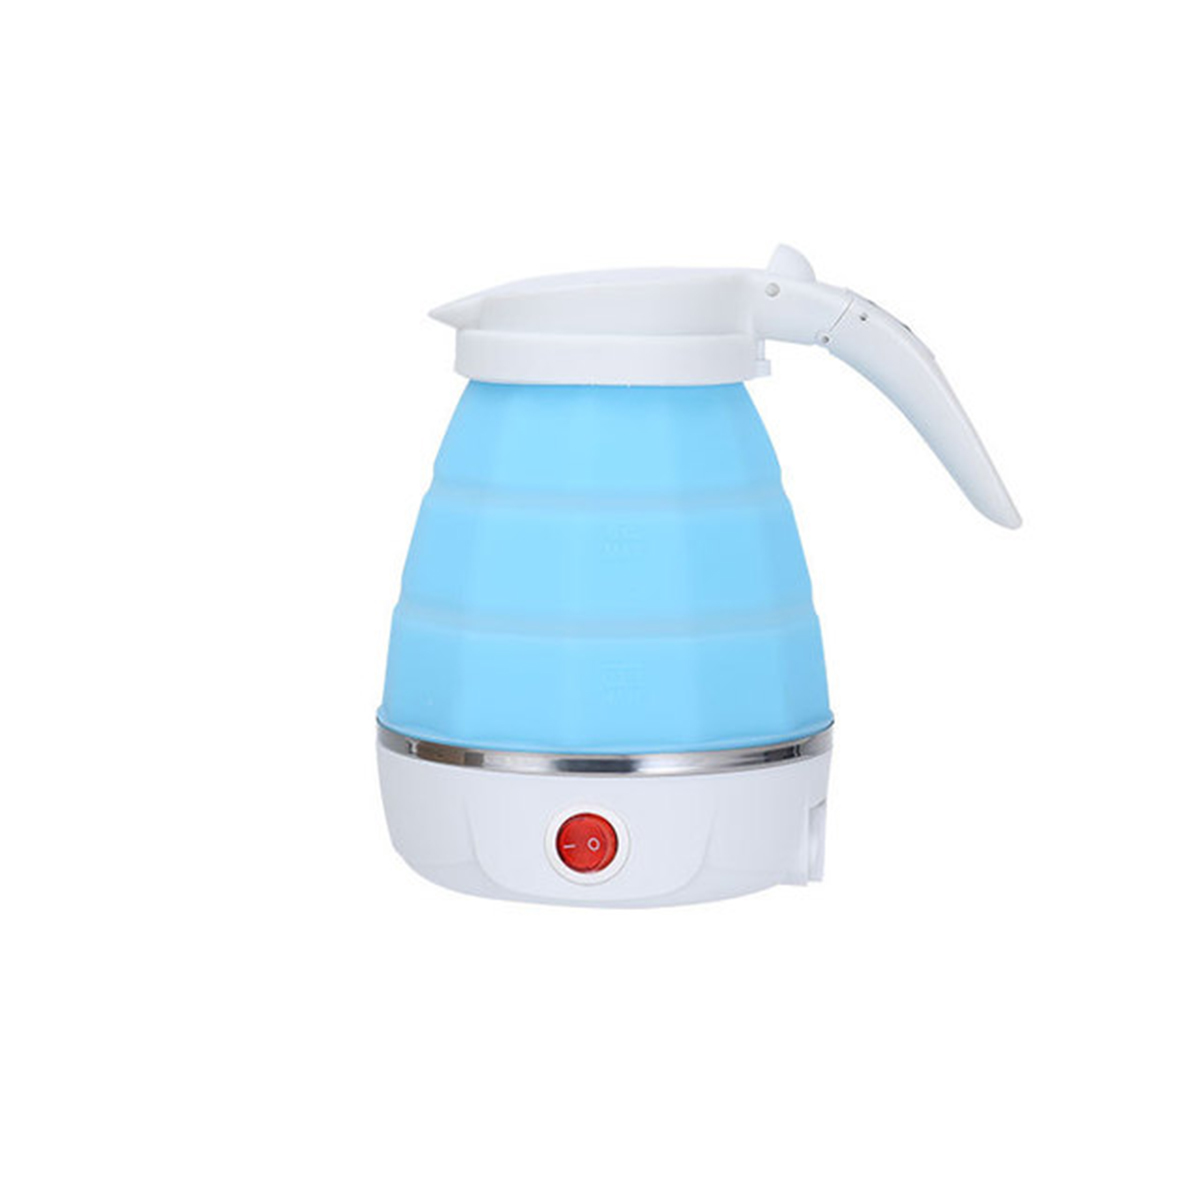 700W Electric Kettle Travel 0.6L Mini Foldable Kettle heated Water Boiler Silicone Electric Kettles Collapsible Camping Kettle